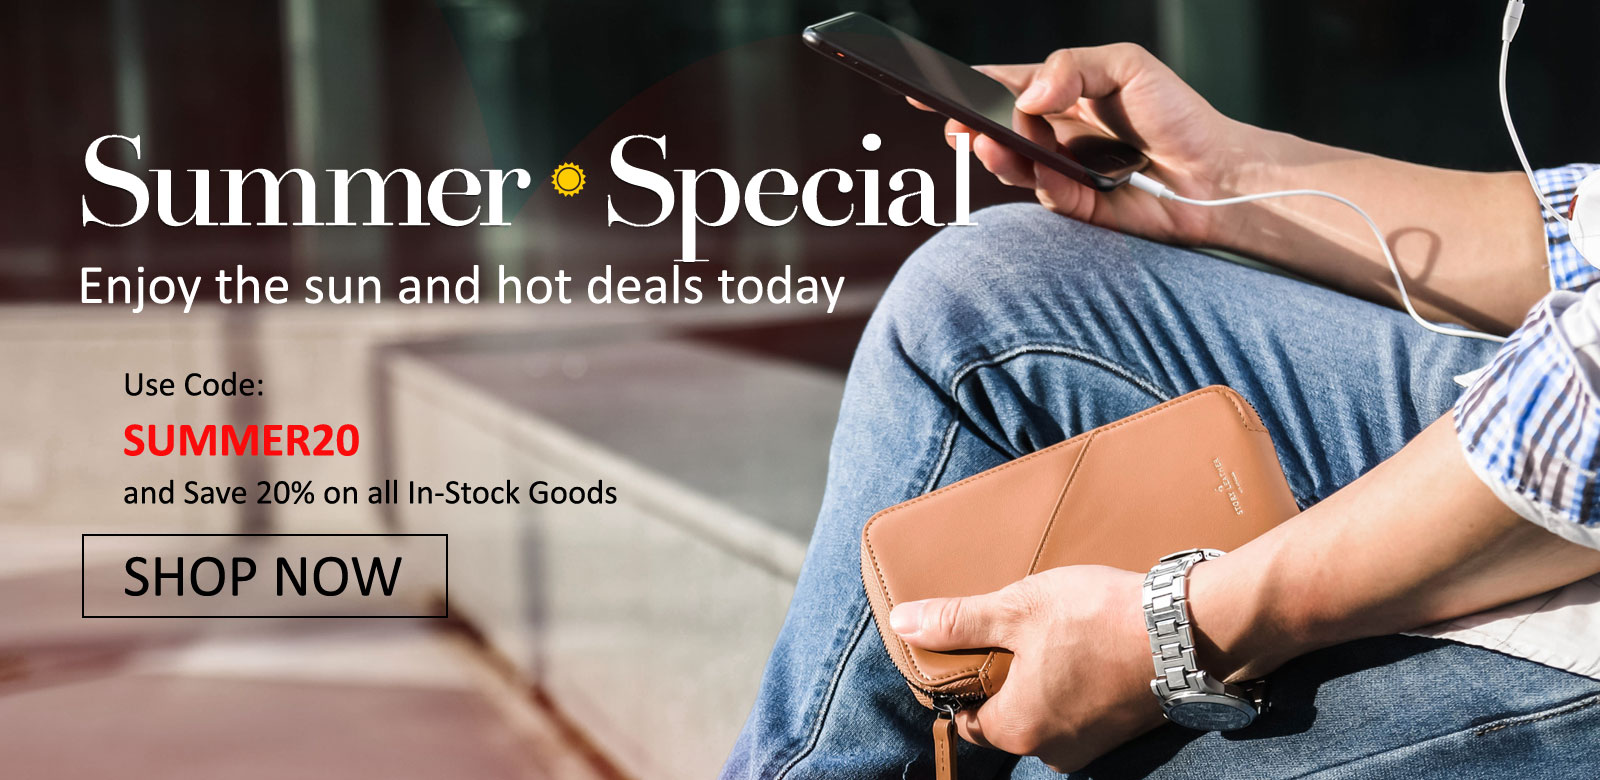 Summer Special - Use Promo Code SUMMER20 to Save 20% on In-Stock Goods